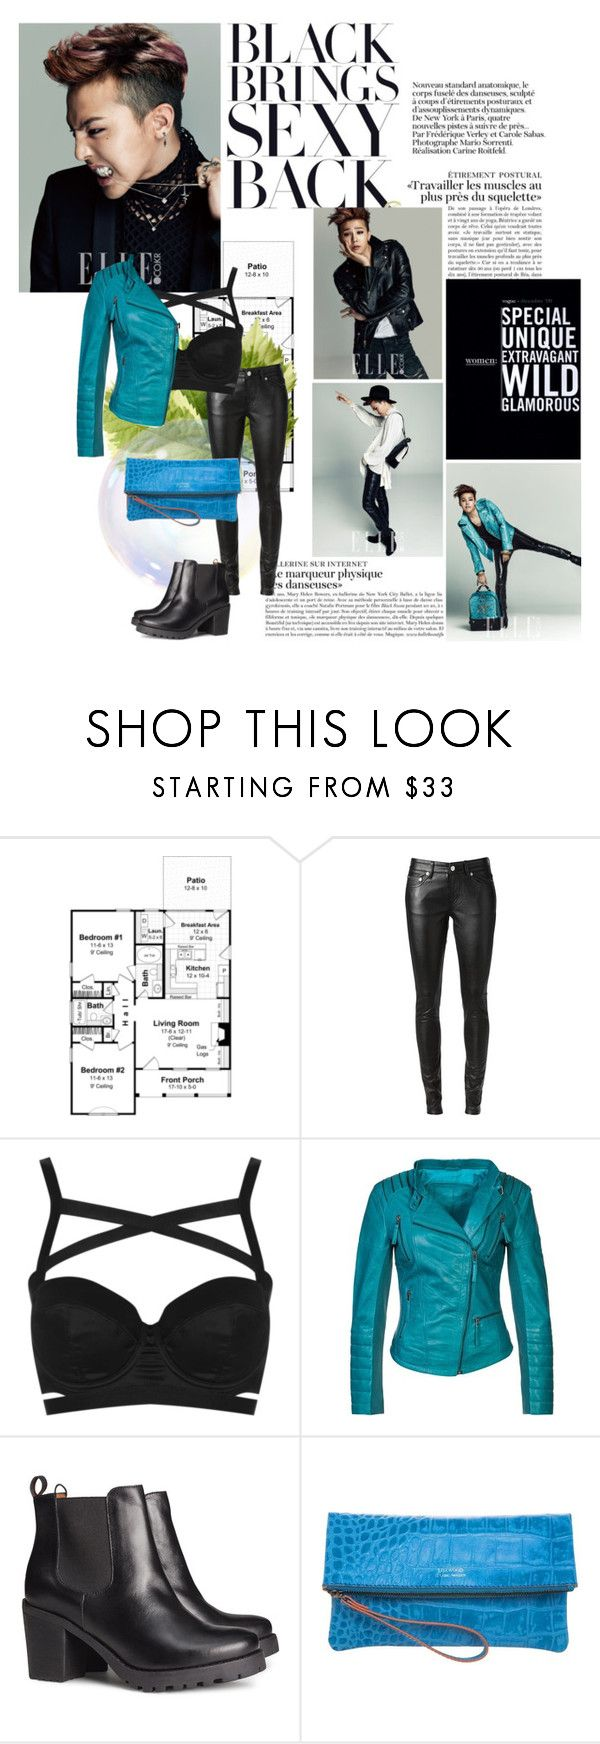 """I Am #210 Kwon Jiyong"" by fyemiho ❤ liked on Polyvore featuring J.ESTINA, Yves Saint Laurent, Topshop, Cigno Nero, H&M and Loxwood"